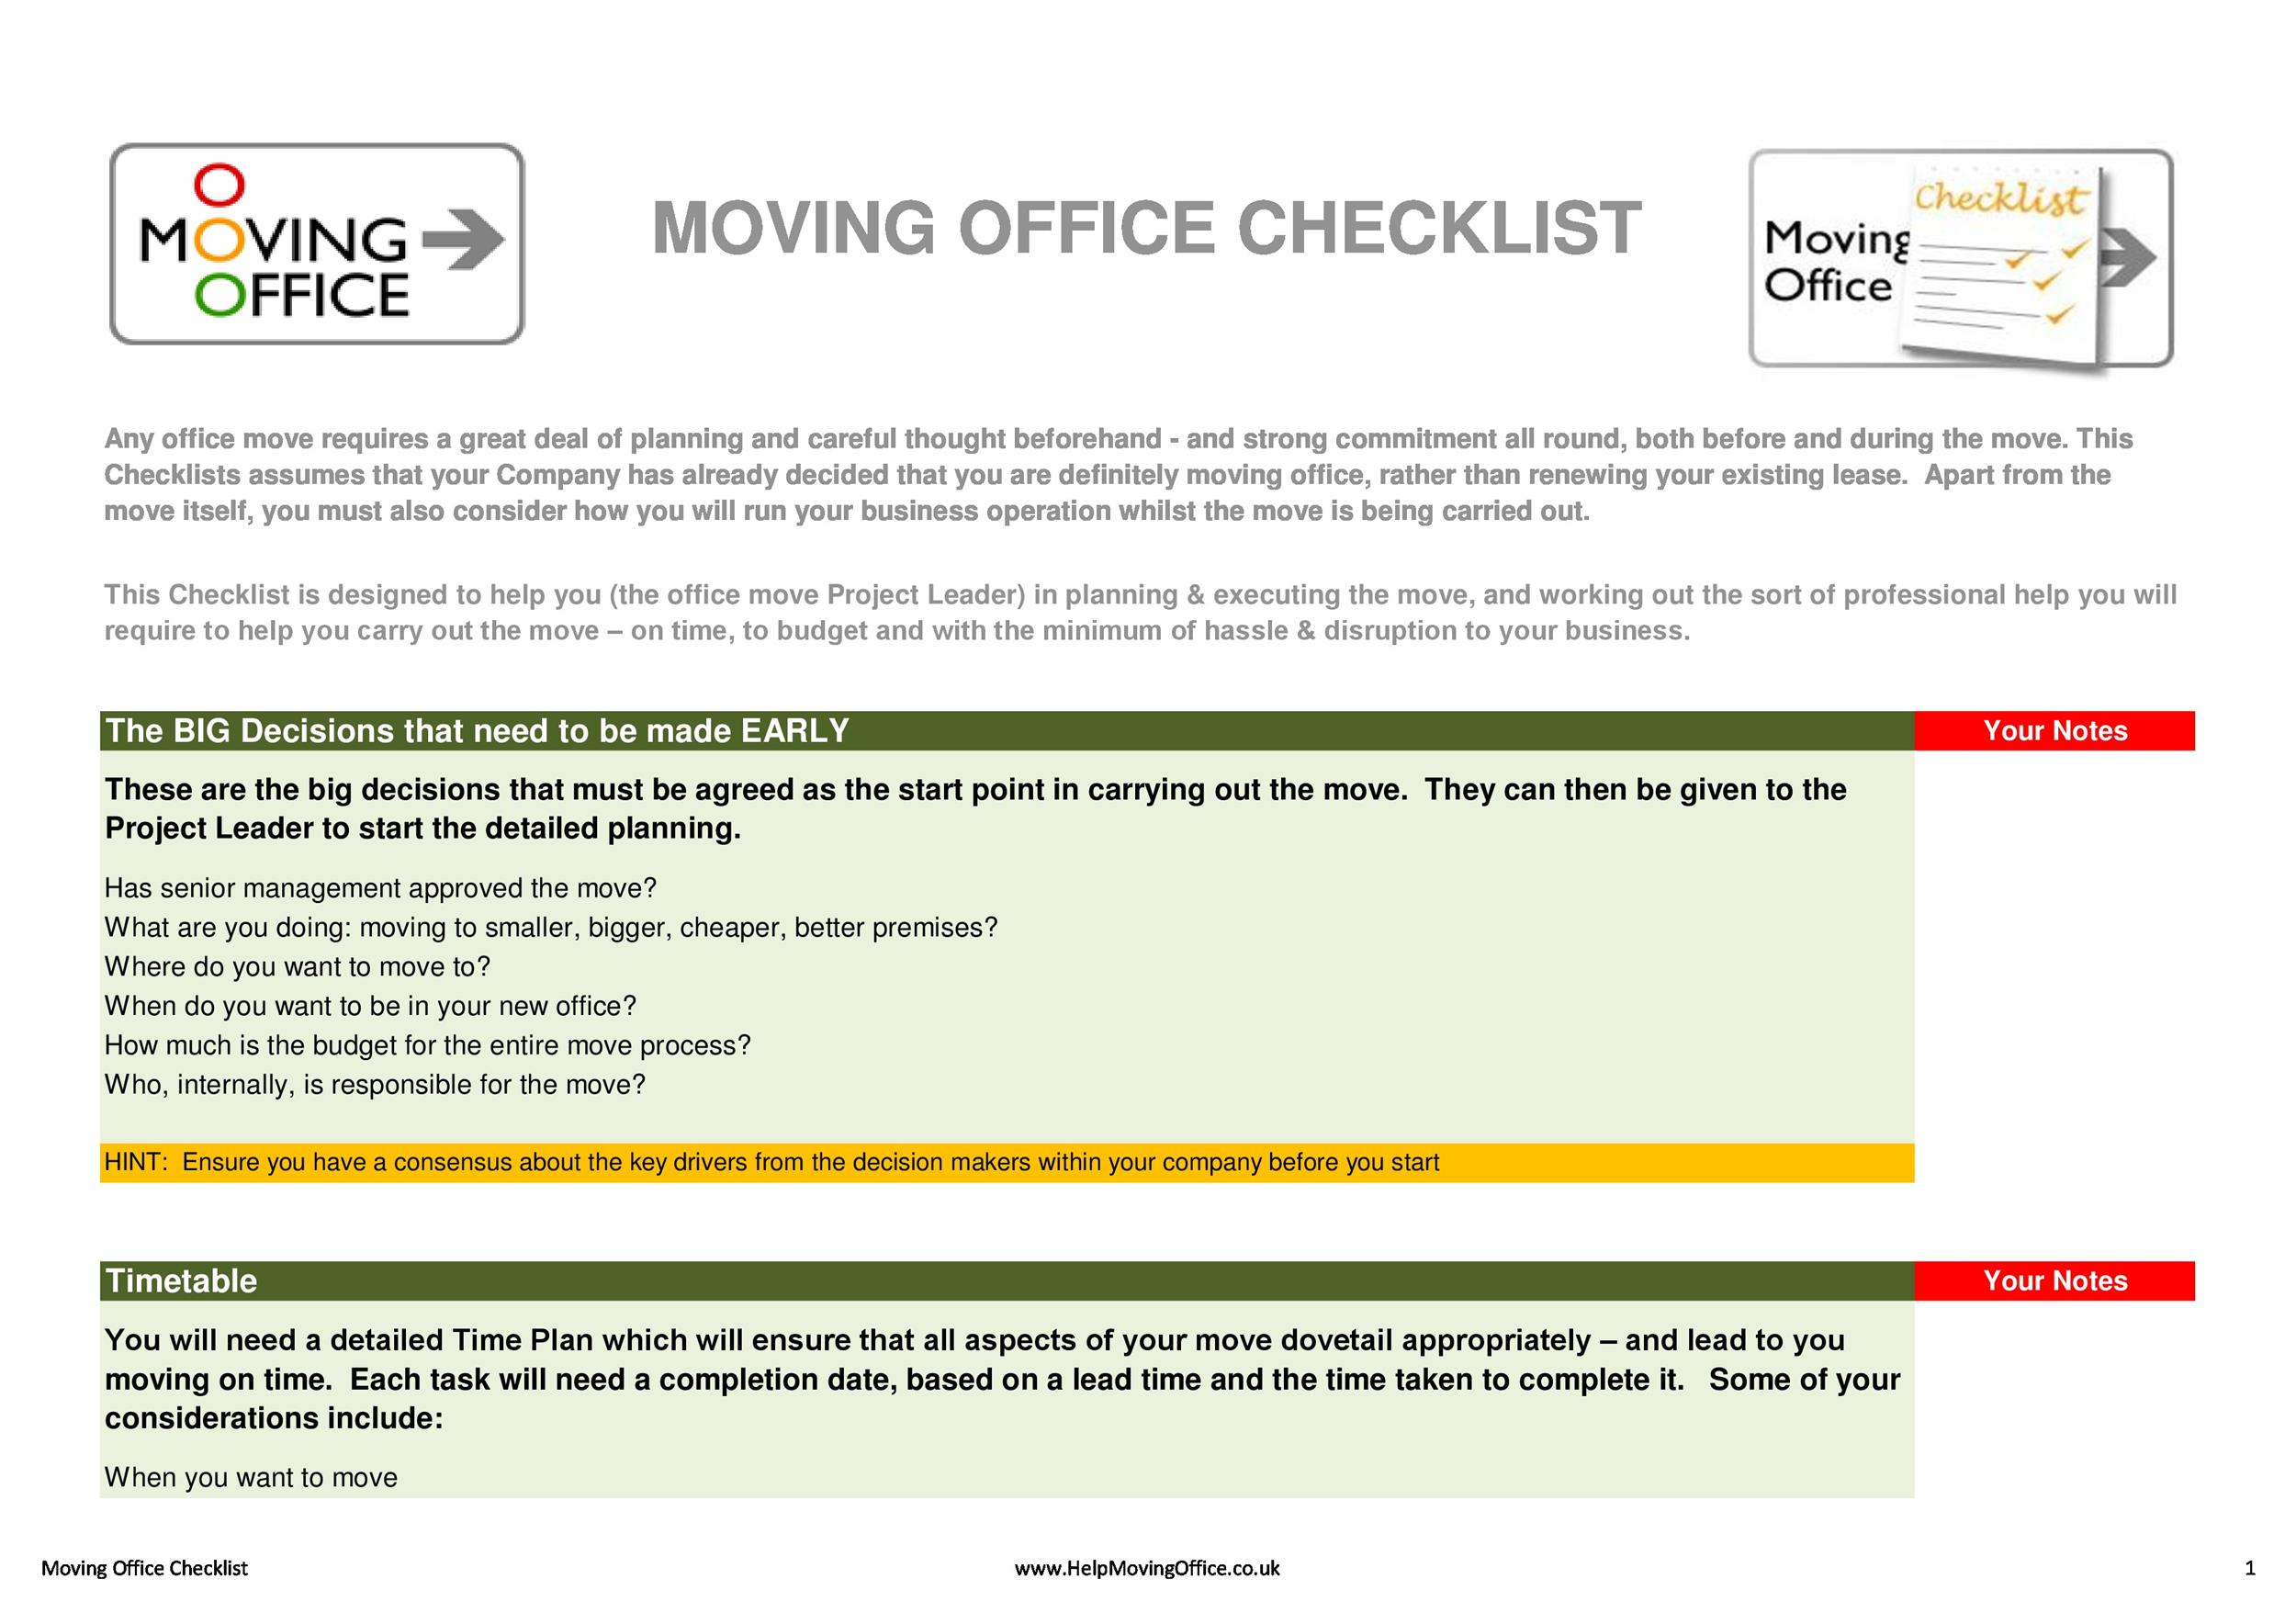 Moving Checklist Template Moving Checklist 30 45 Great Moving - moving checklist template